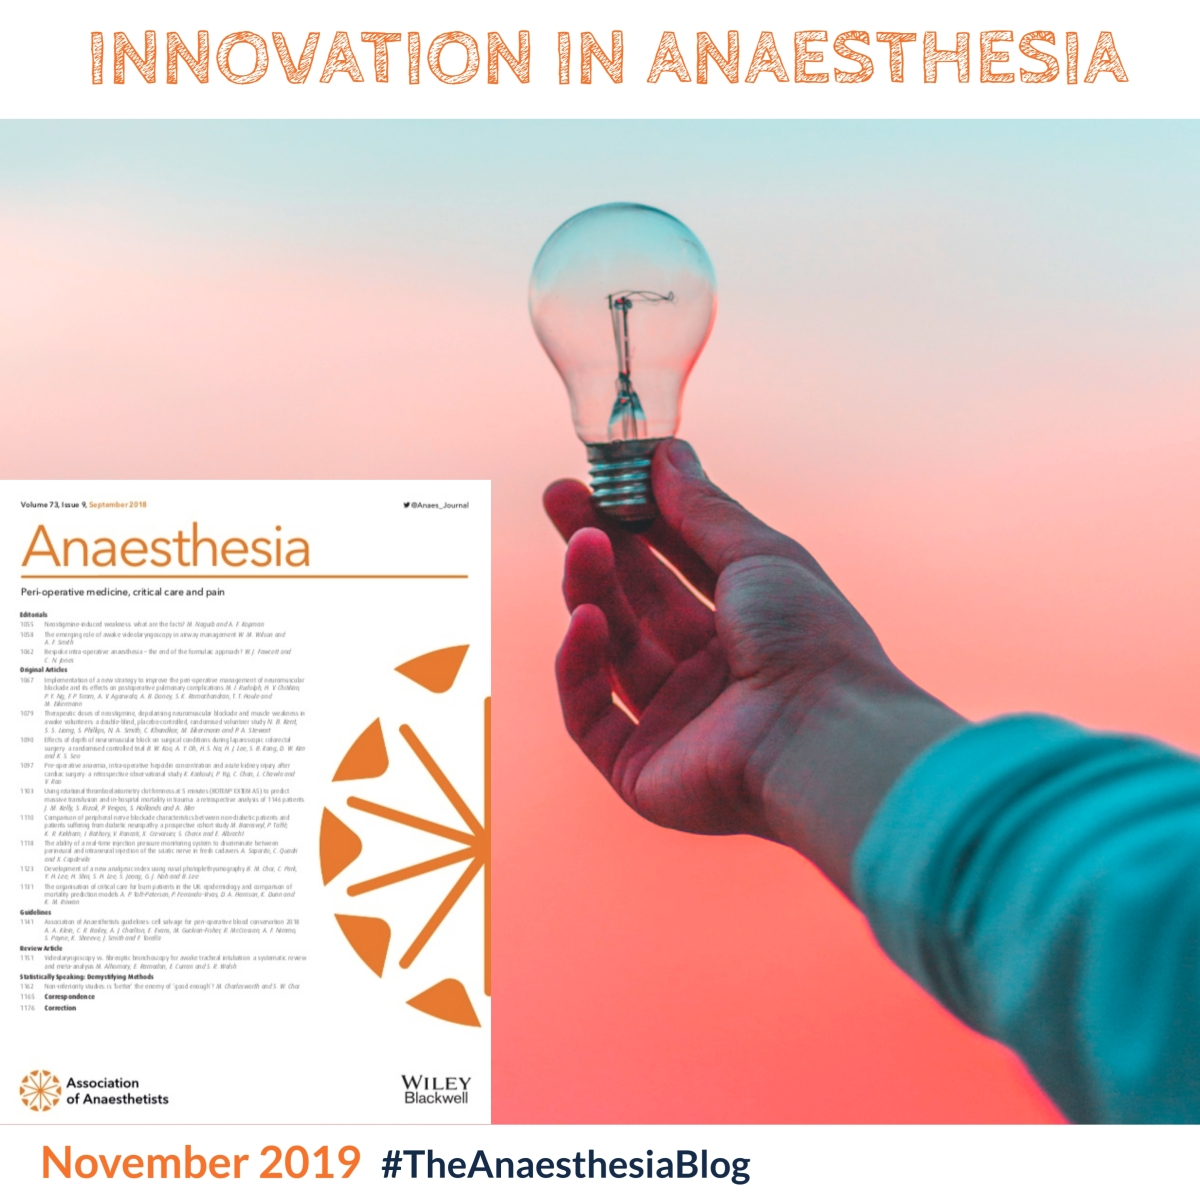 Innovation in anaesthesia